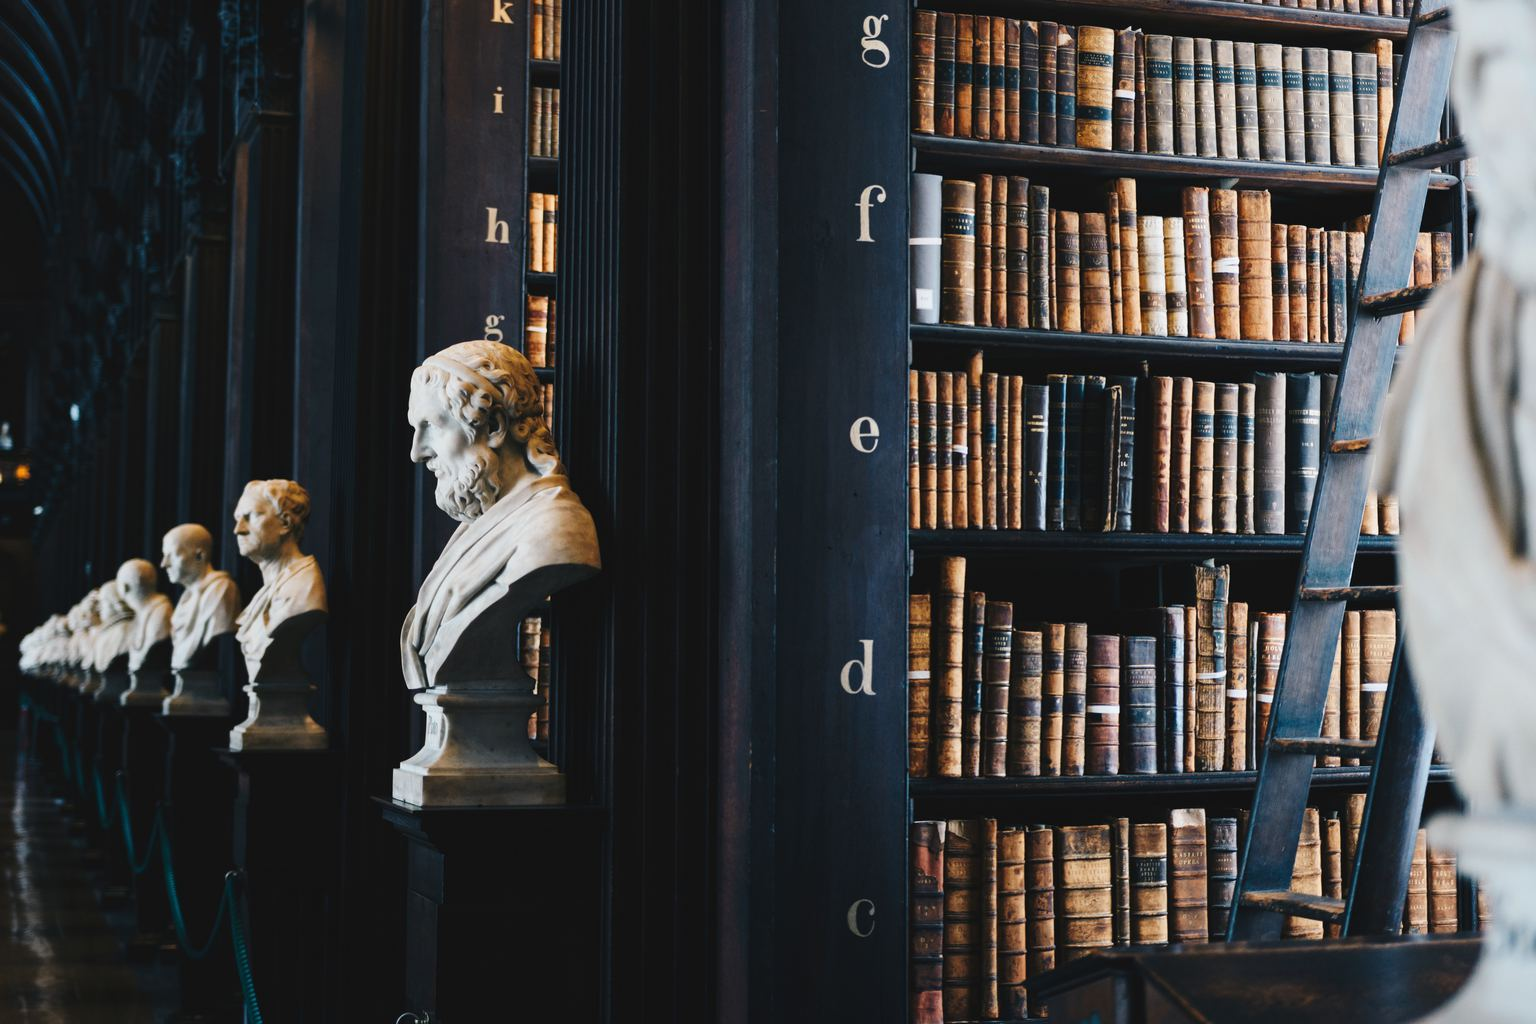 library busts figureheads poetry